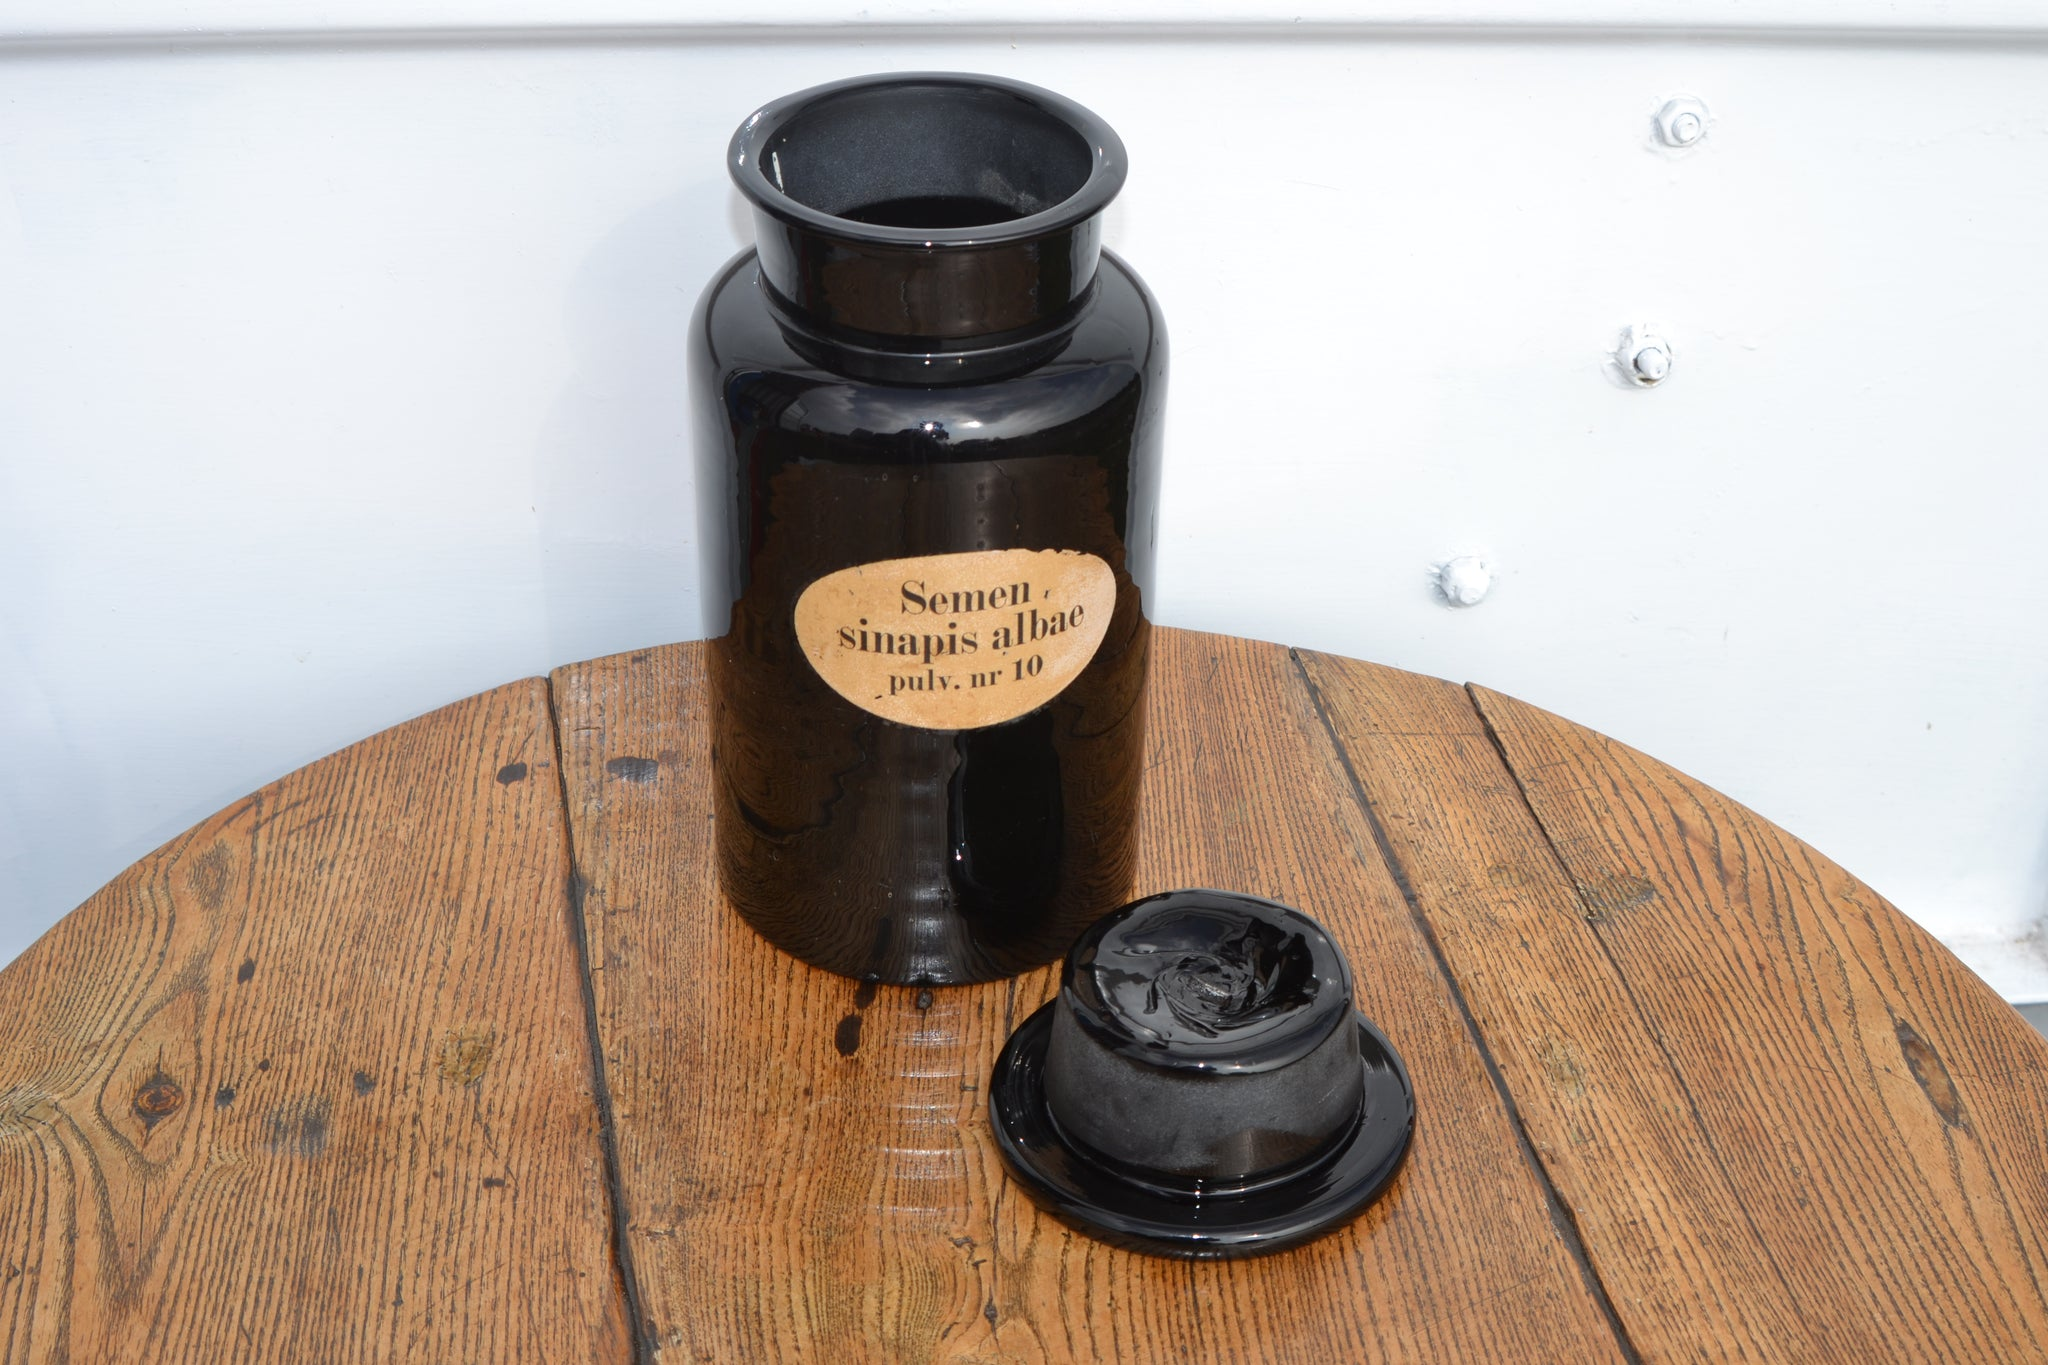 A Georgian black glass chemist jar with original Semen Sinapis albae label